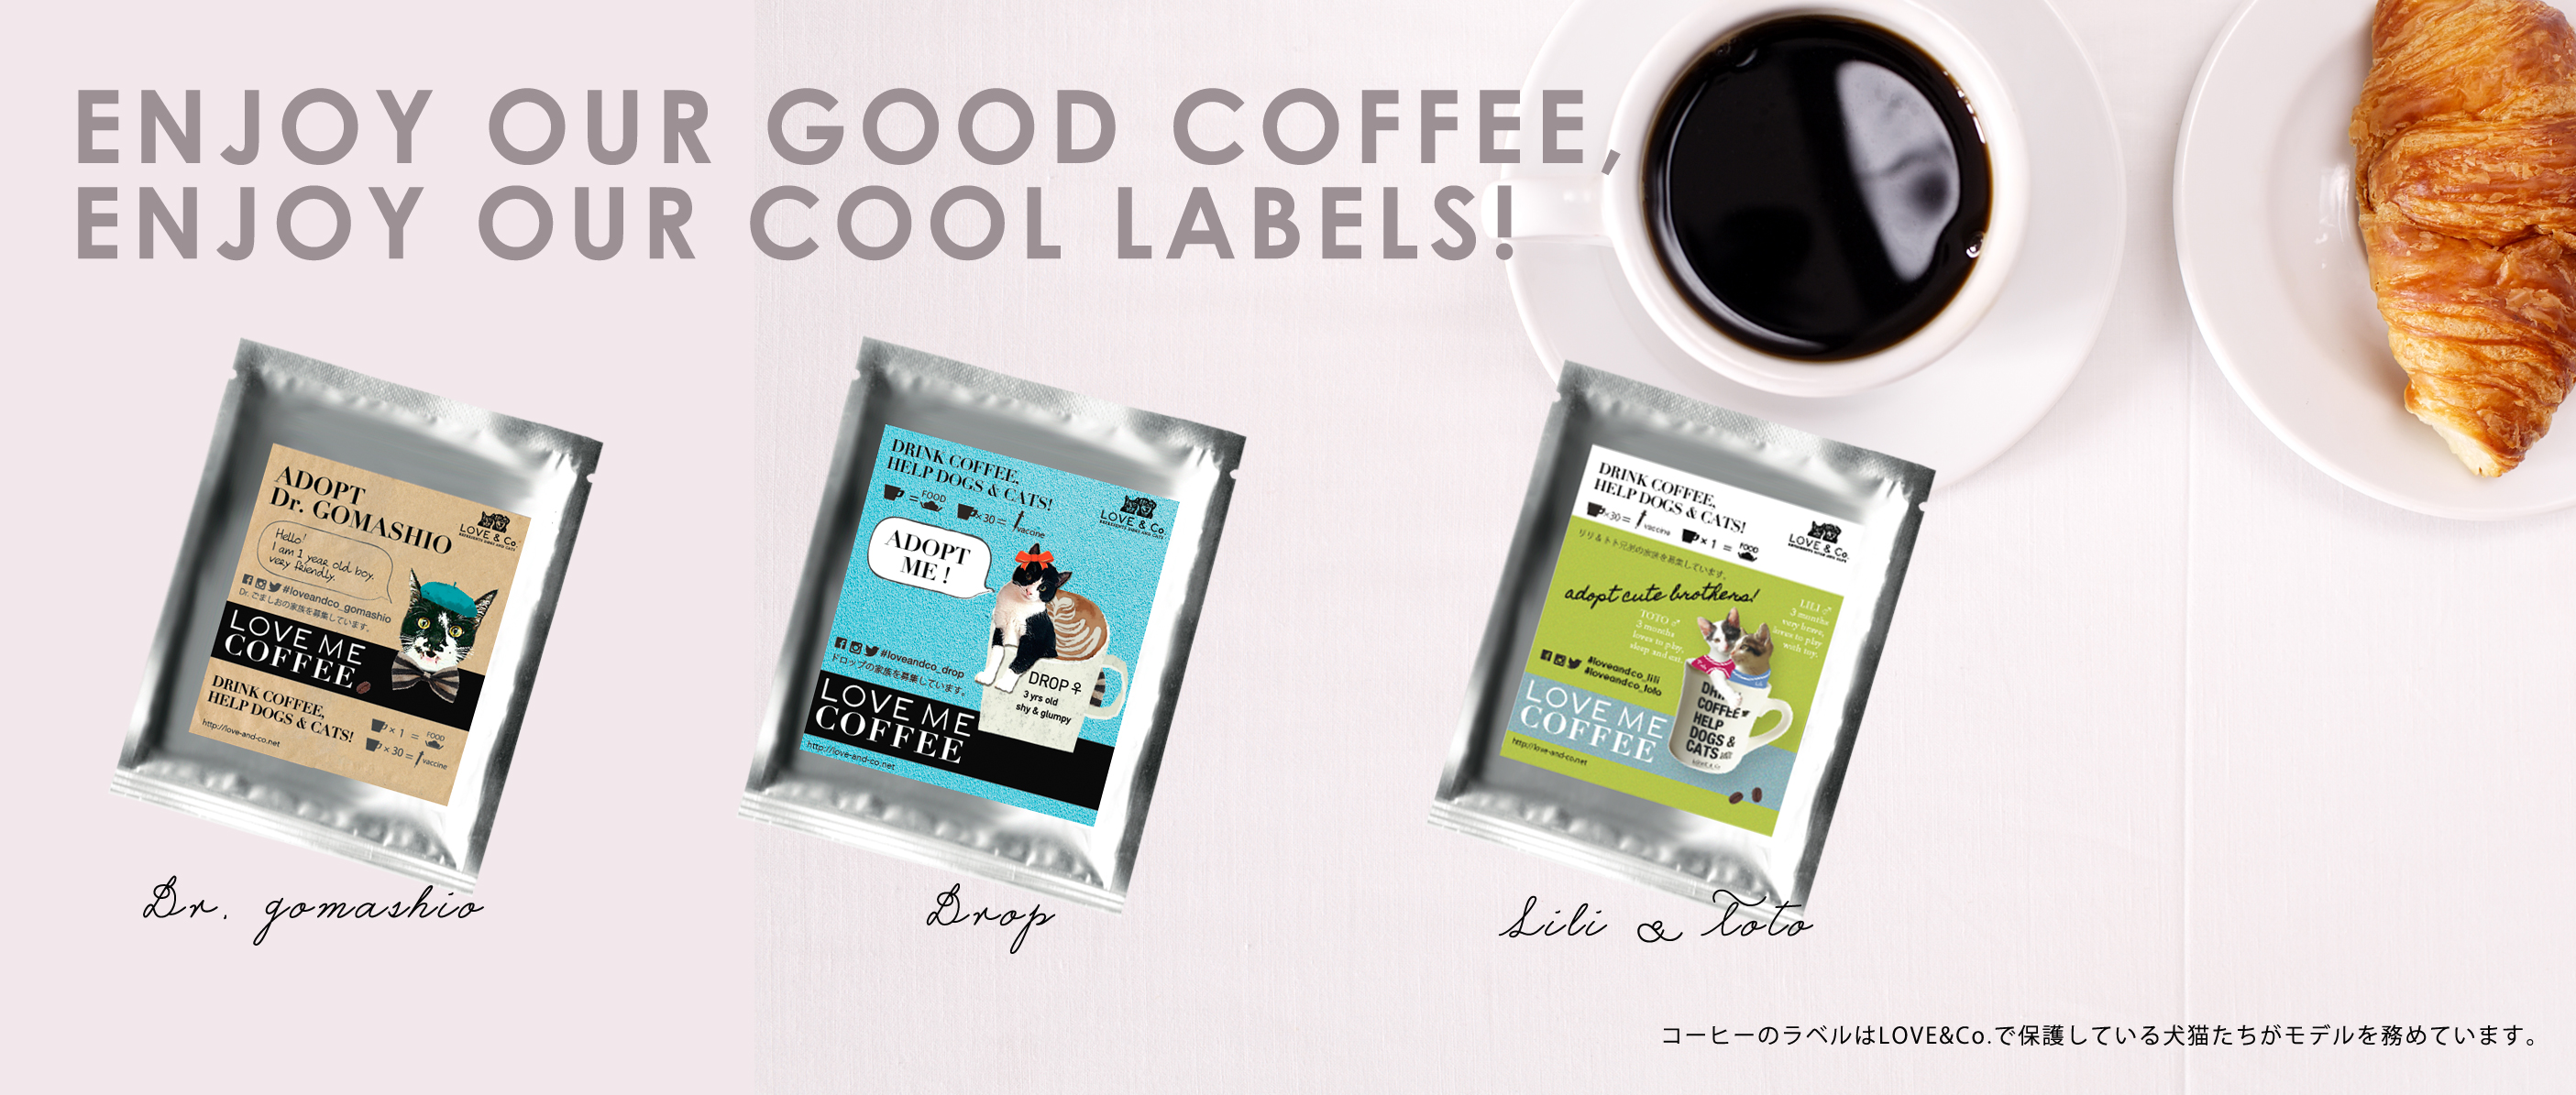 coffee-label2